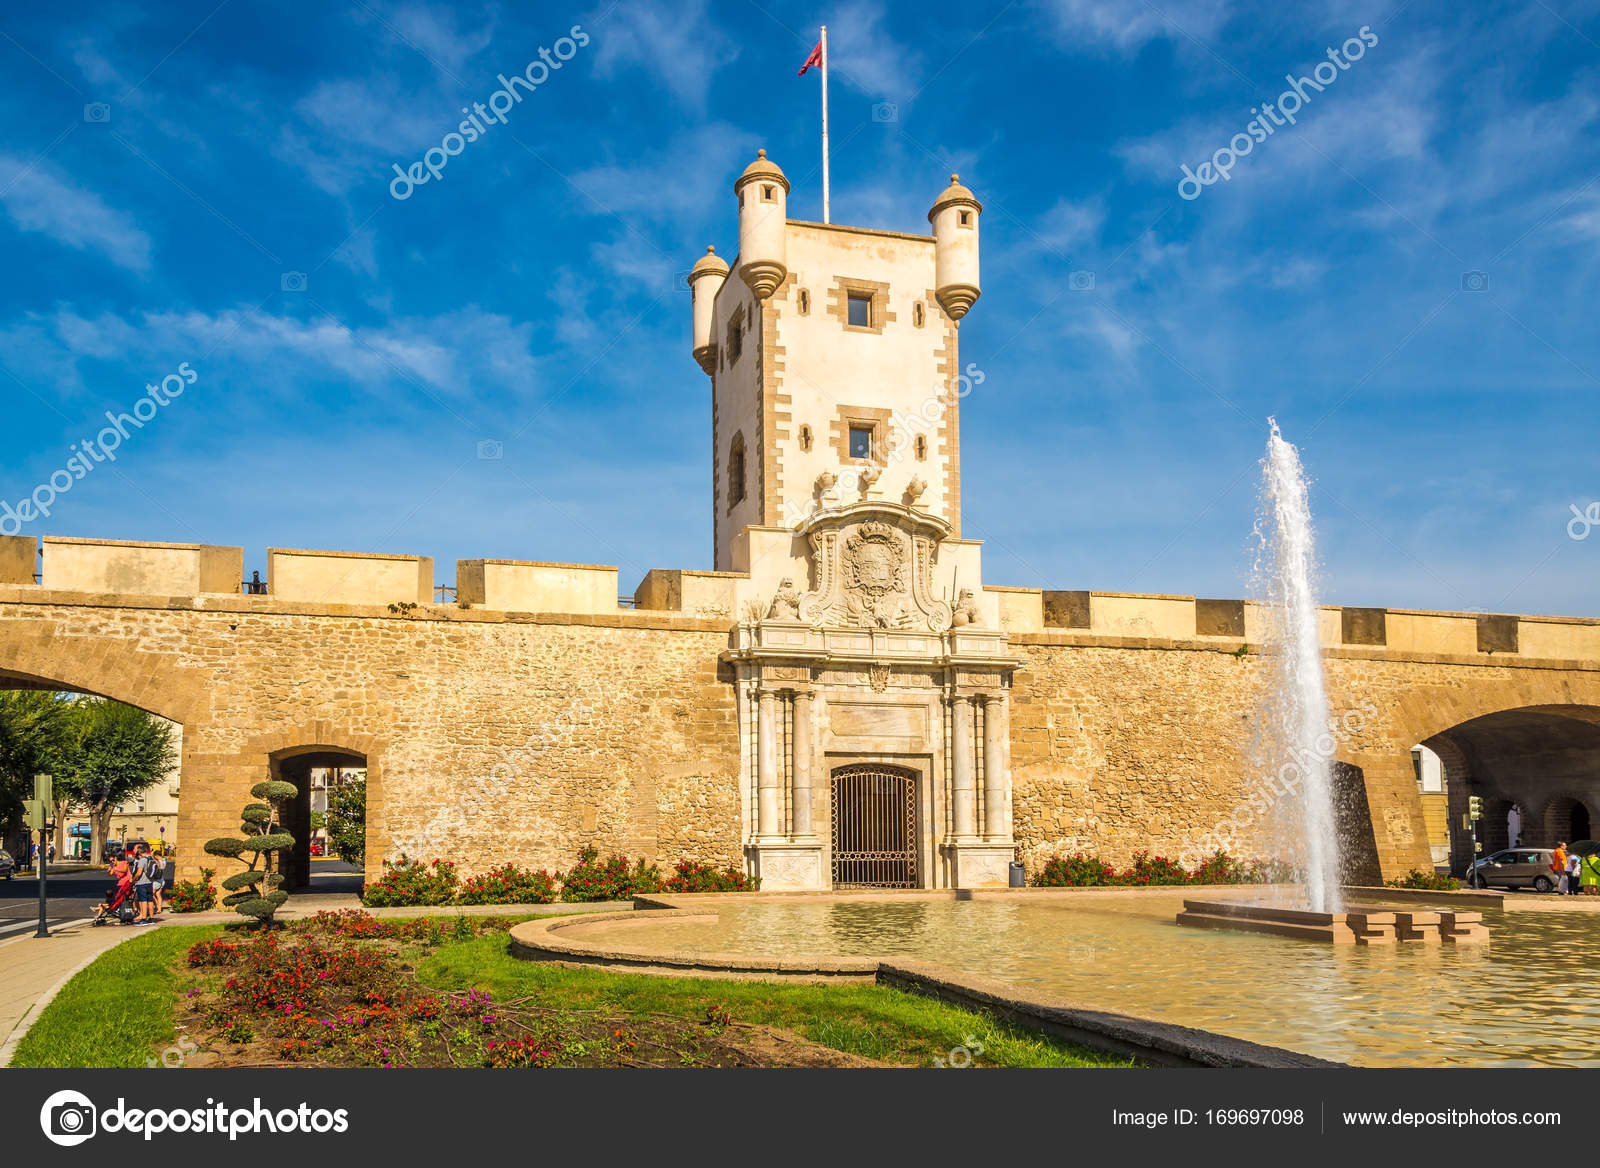 CADIZSPAIN - SEPTEMBER 302017 - View at the Tower of the Earth Doors at the Constitution place in Cadiz. Cadiz is the oldest continuously inhabited city ... & View at the Tower of the Earth Doors at the Constitution place in ...